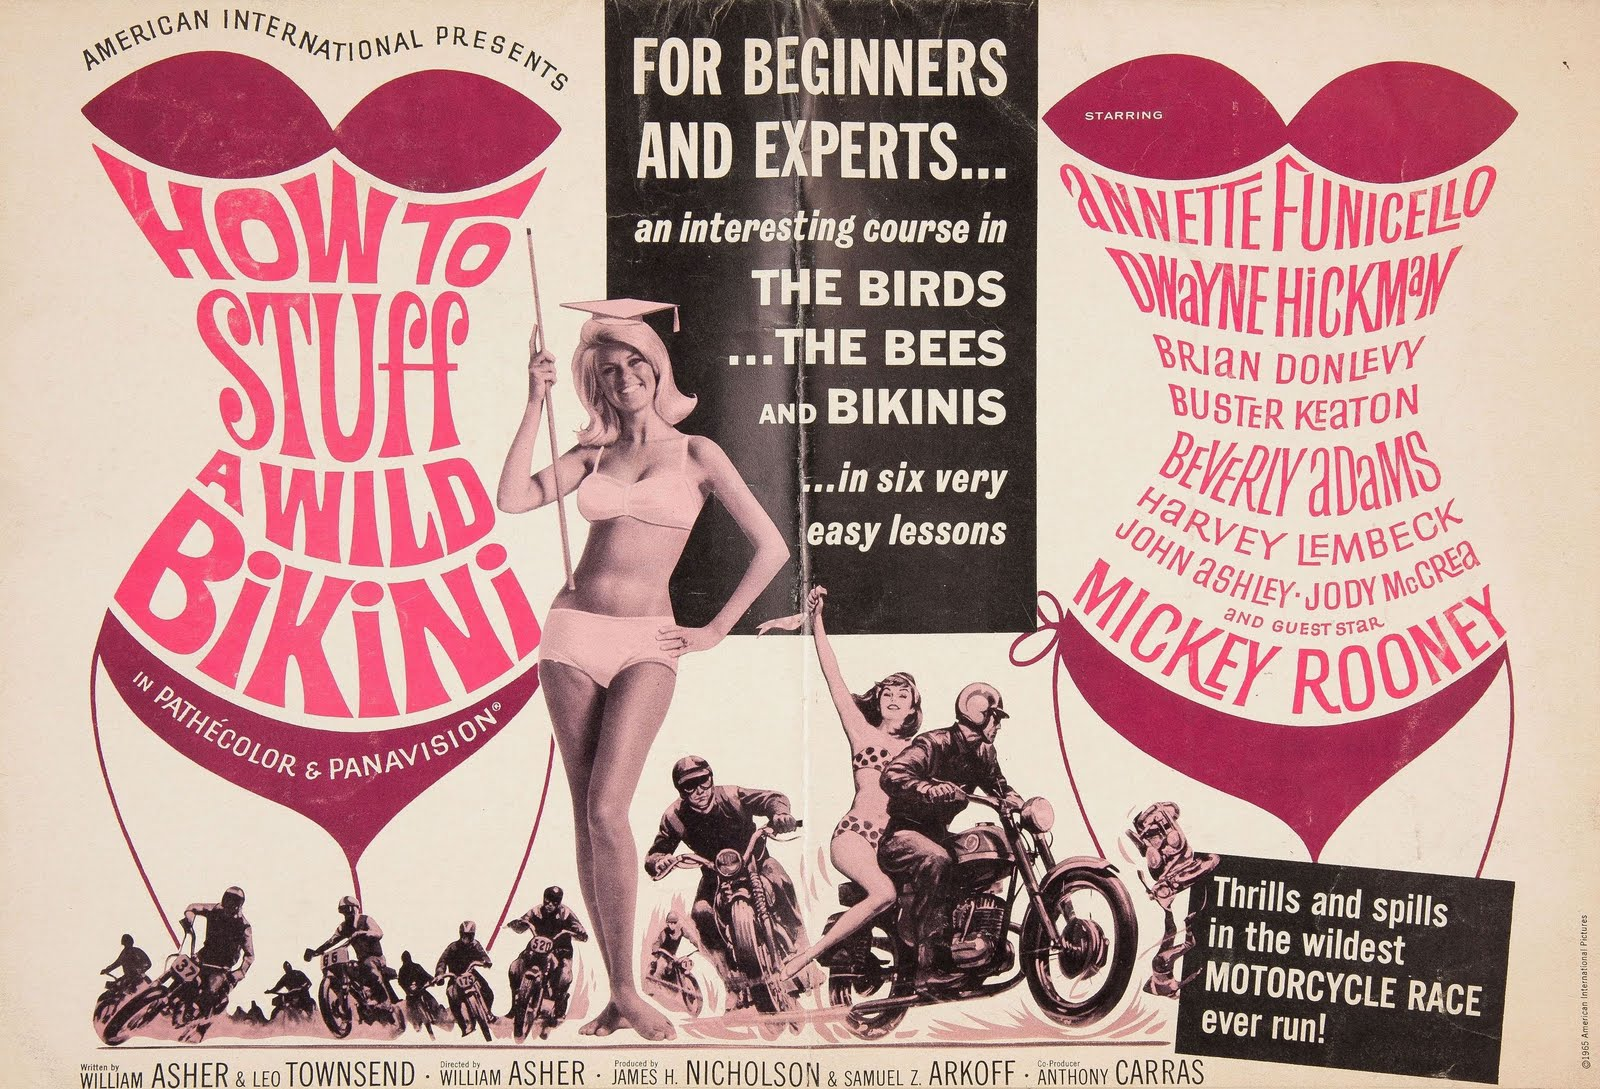 How to Stuff a Wild Bikini Pressbook Cover - 1965